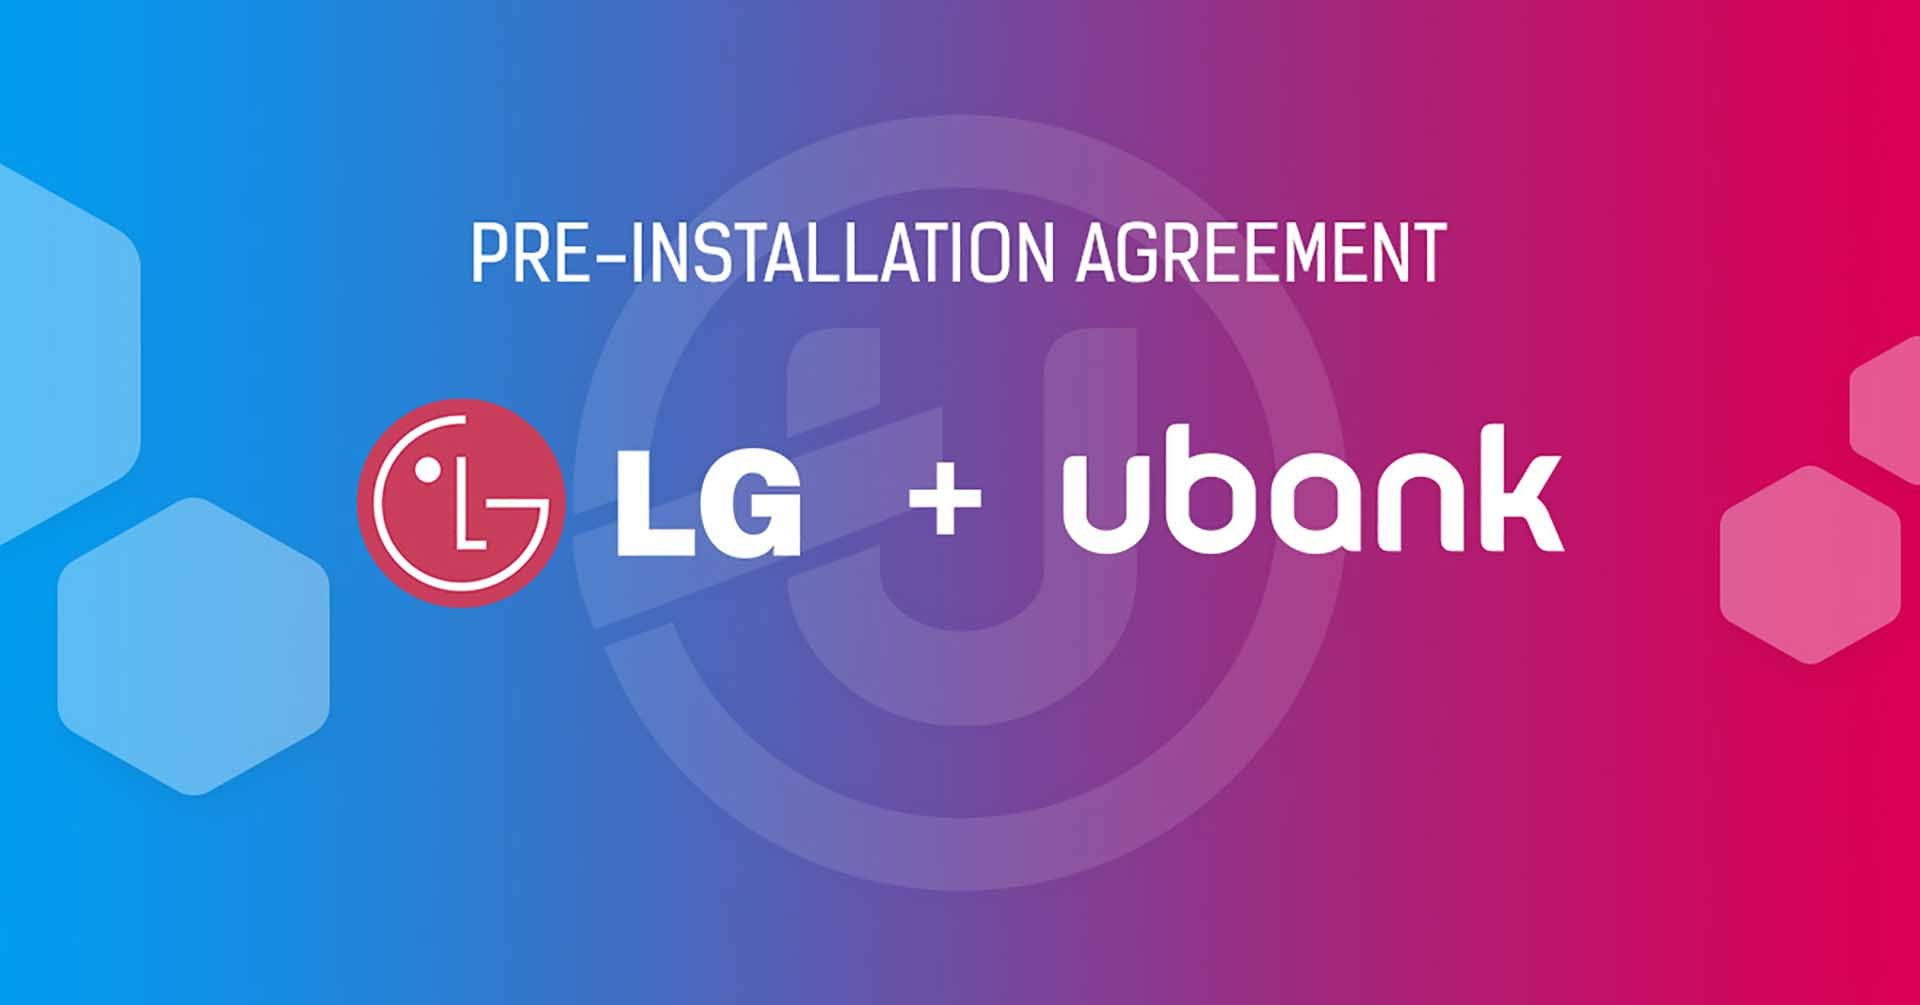 Ubank Mobile App (with Ubcoin Market as its integral part) Signs Pre-Installation Deal With South Korean Tech Giant LG